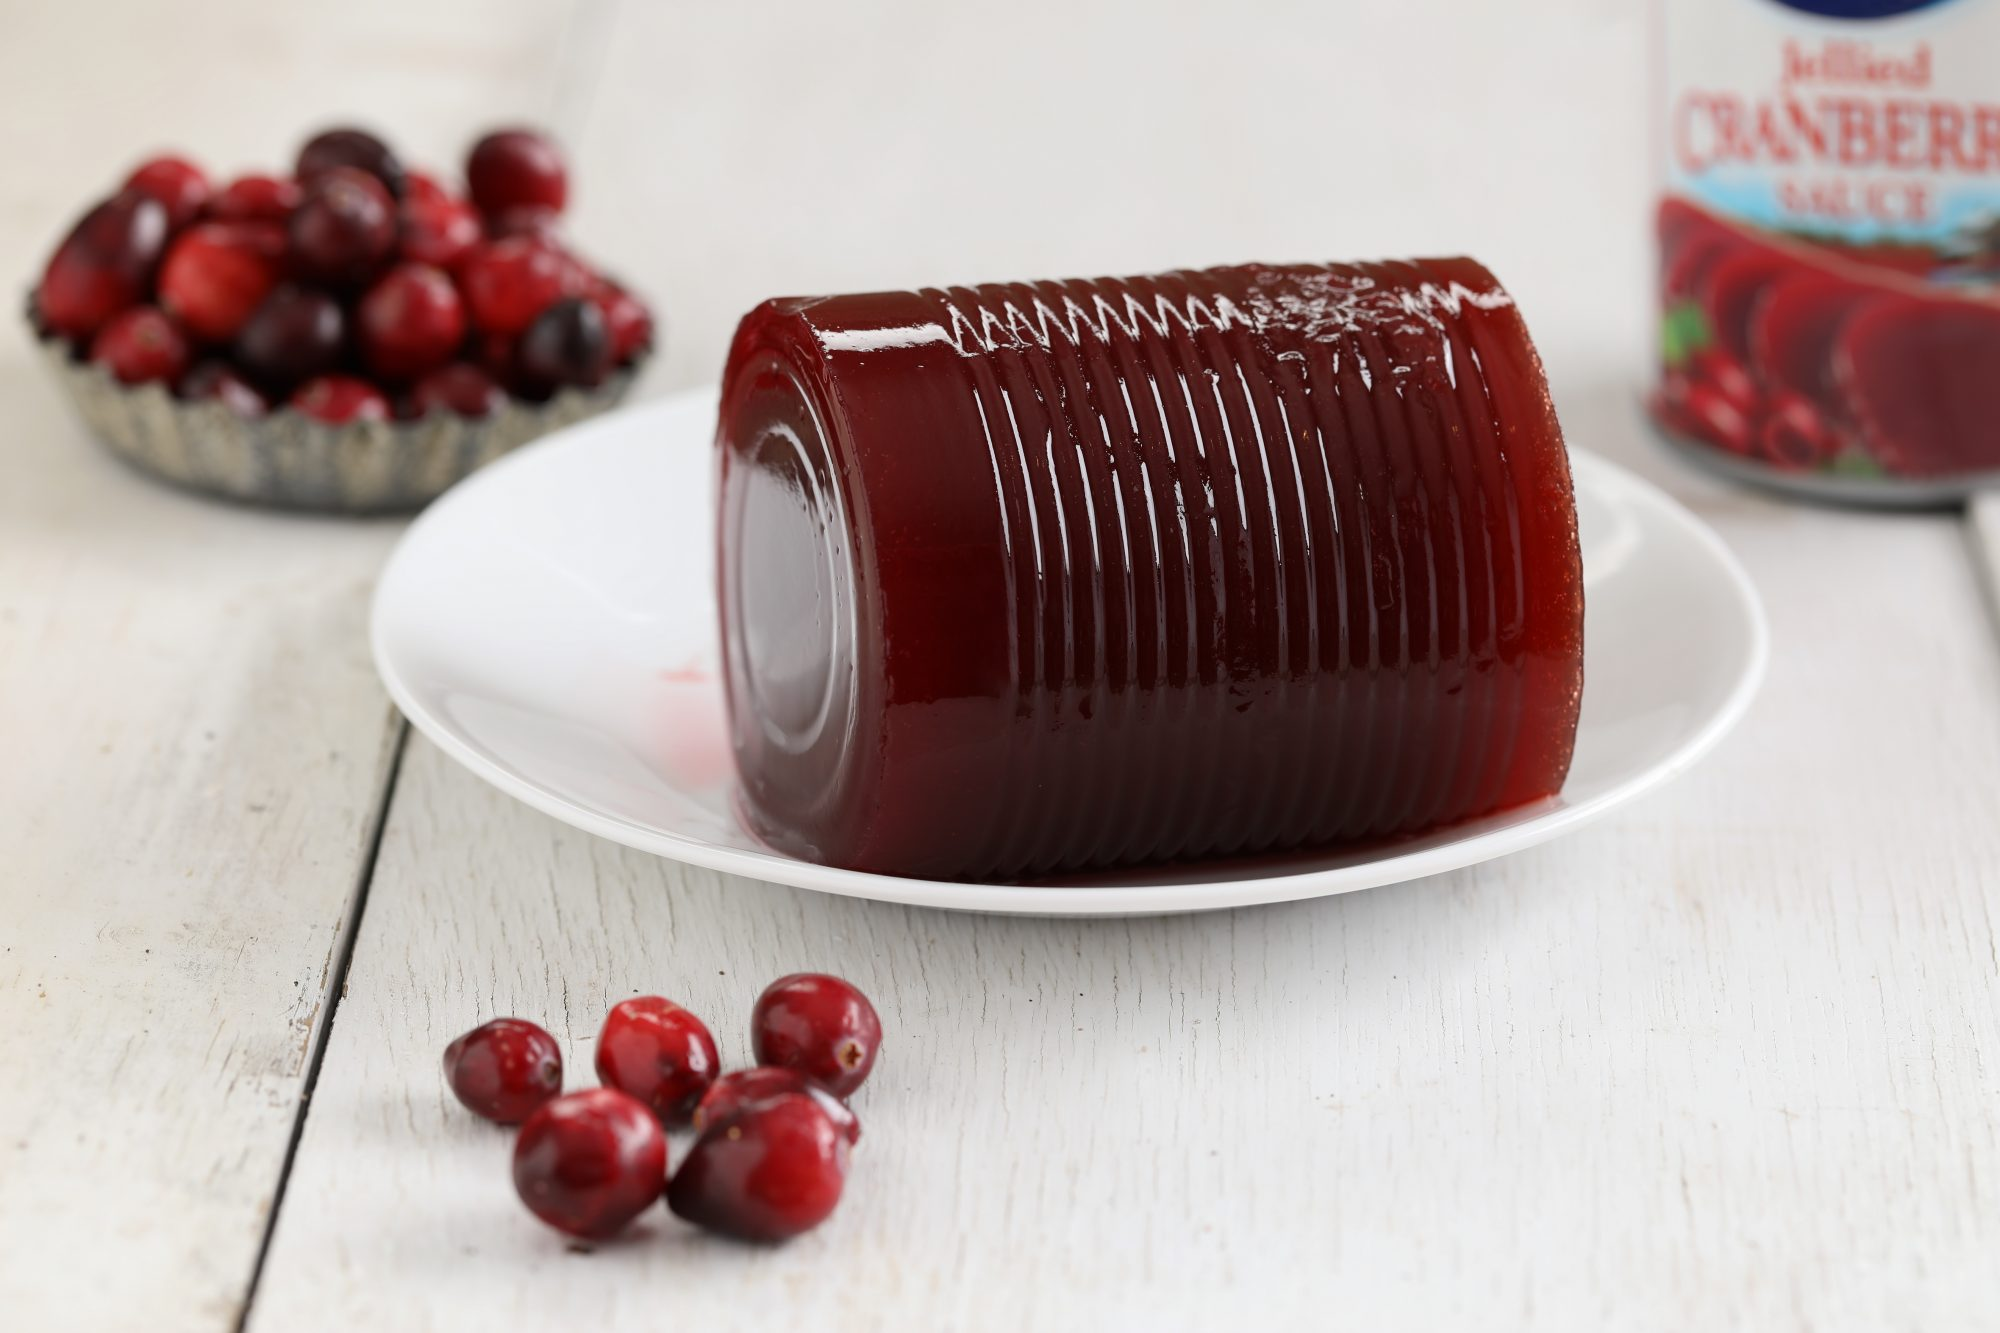 Canned Cranberry Sauce Getty 11/26/19